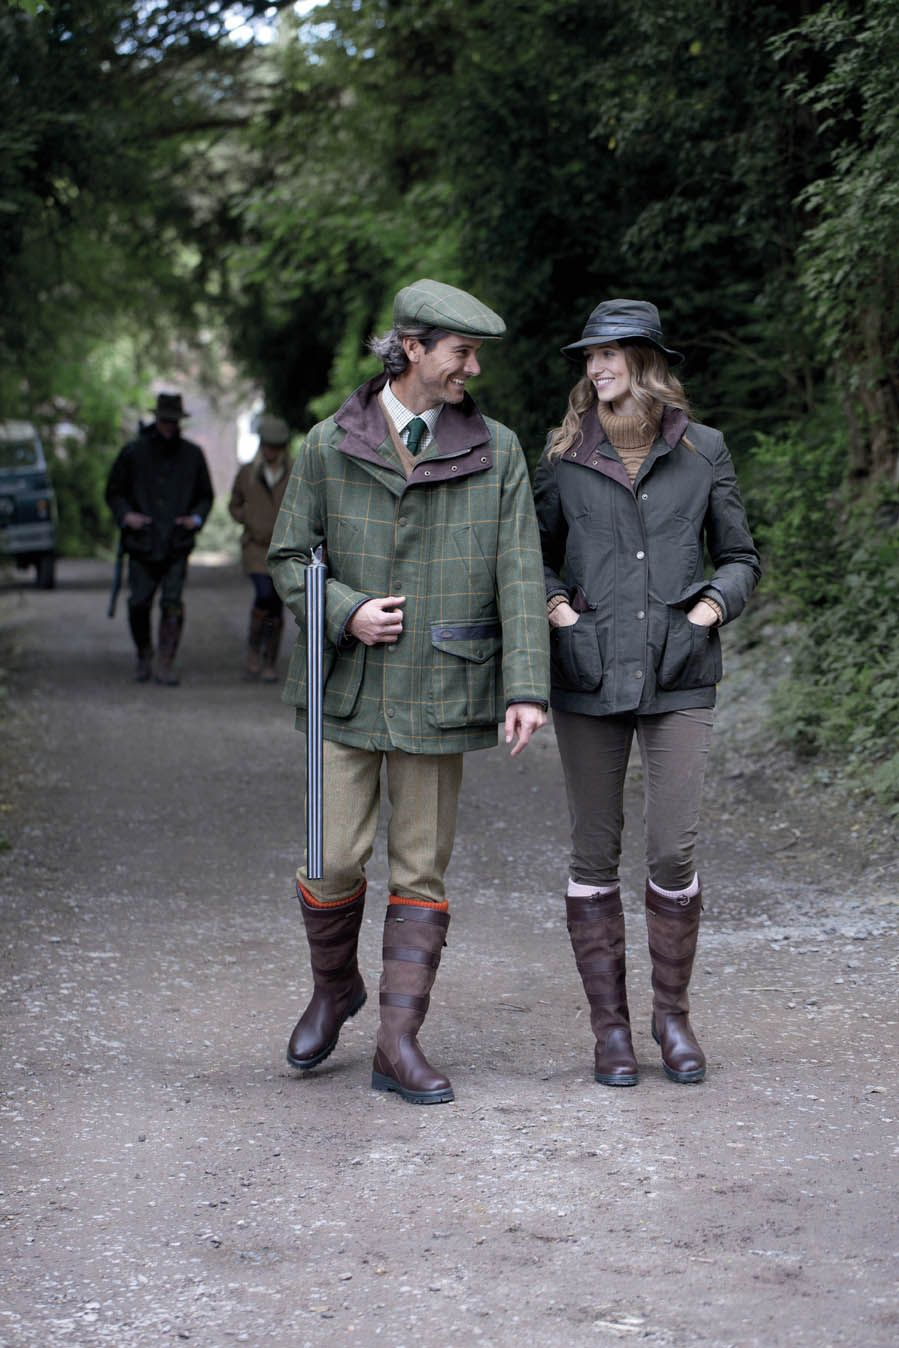 You can't beat a weekend in the country doing a spot of hunting. Dubarryboots